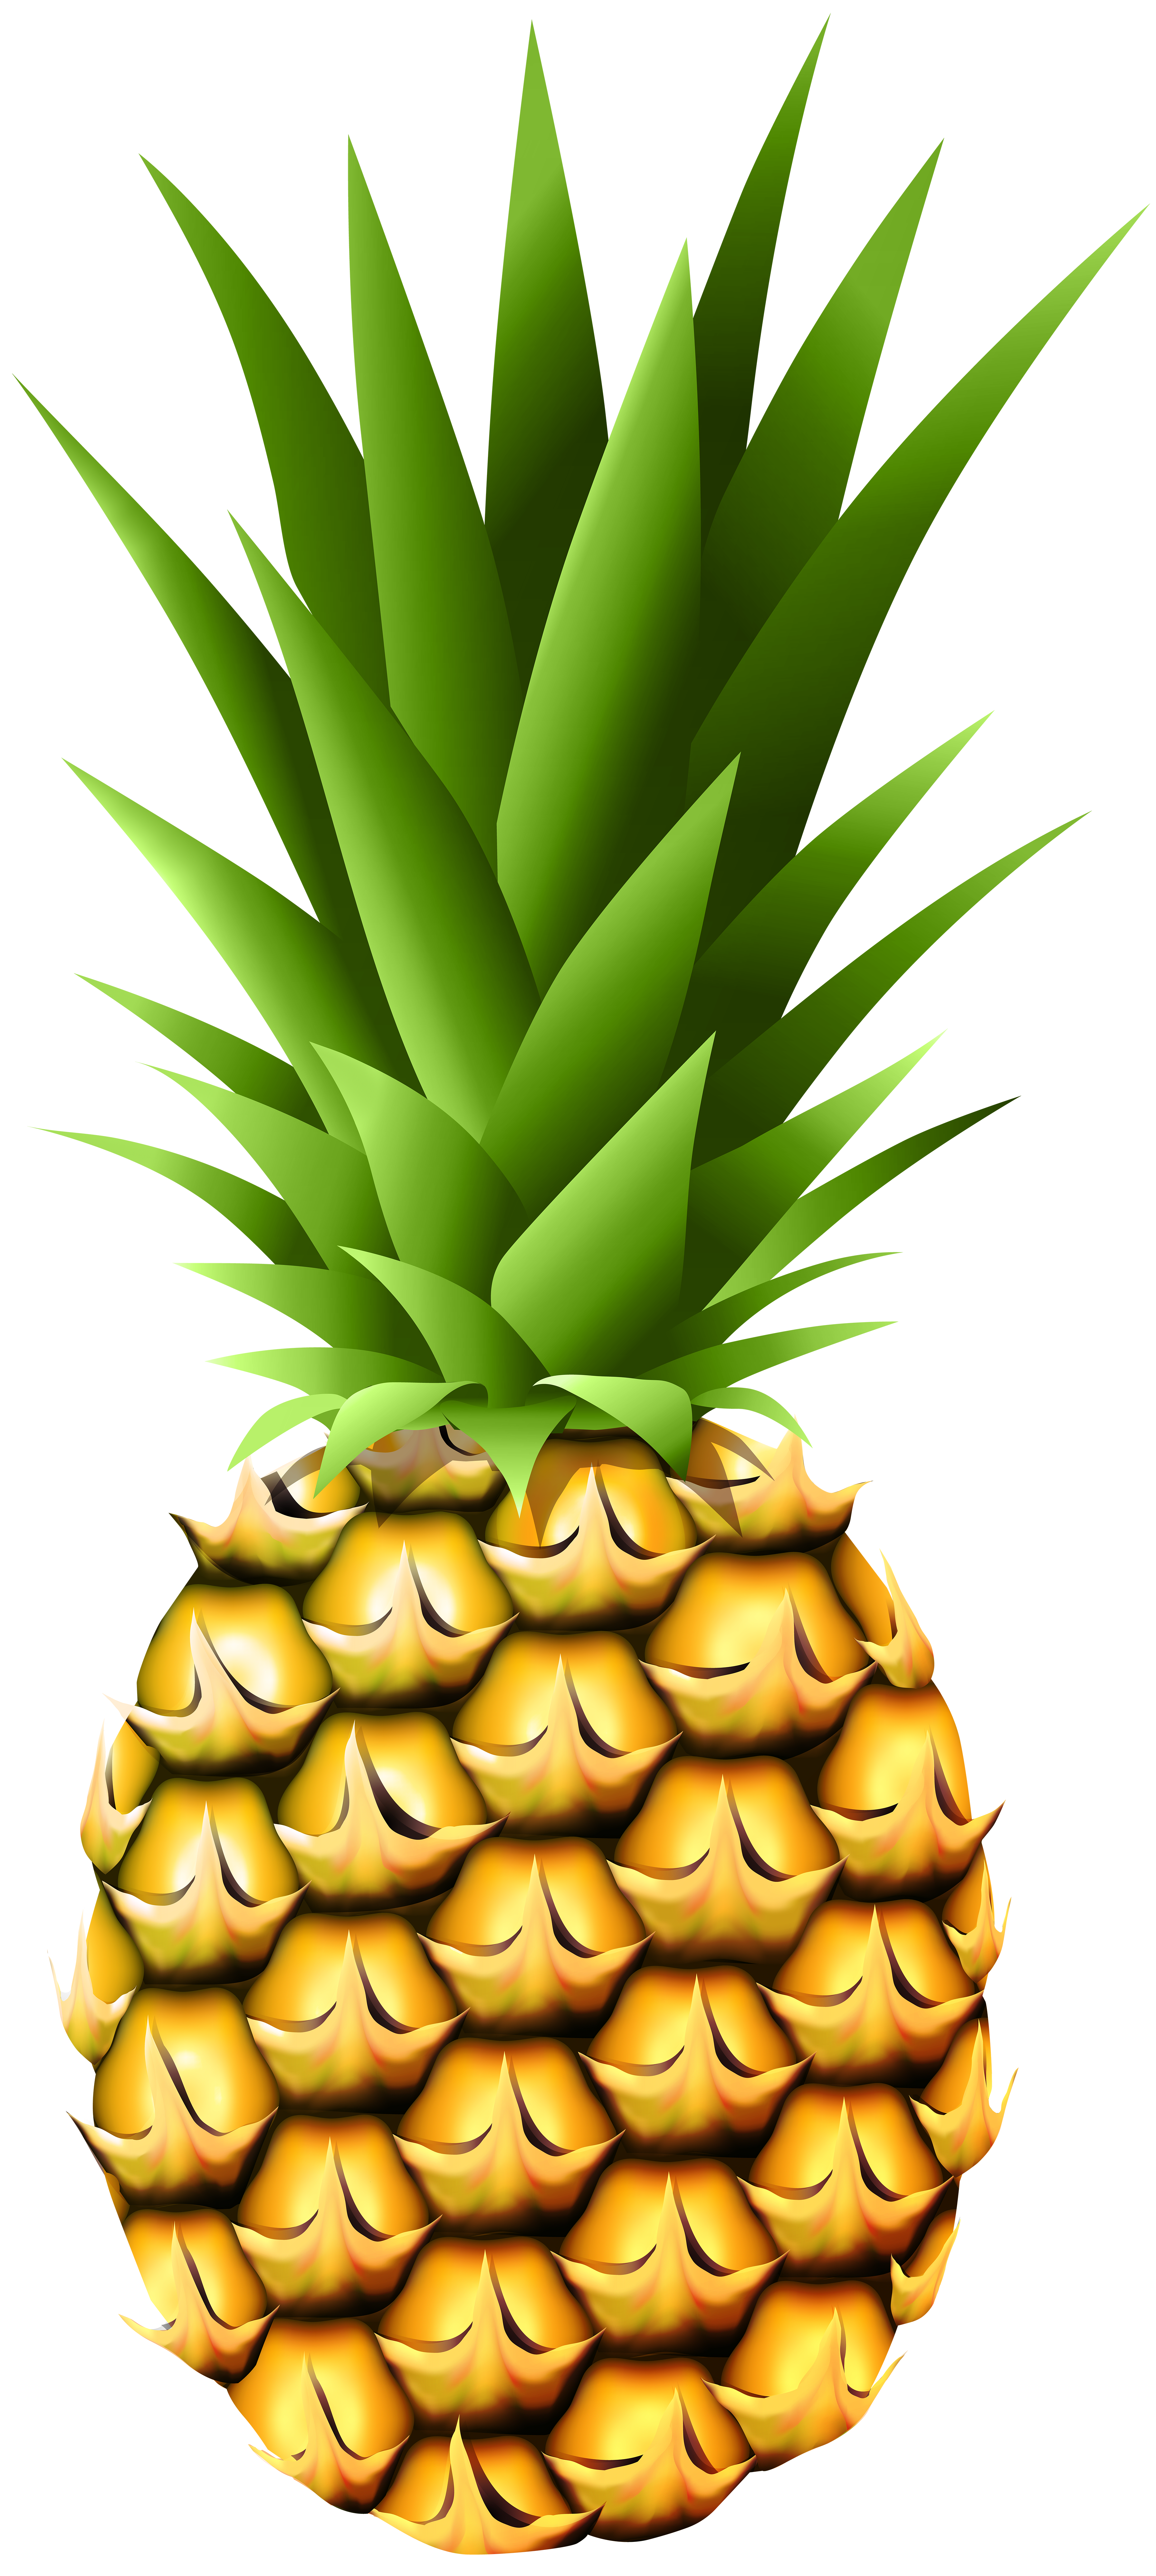 Pineapple clipart cute. Transparent png clip art